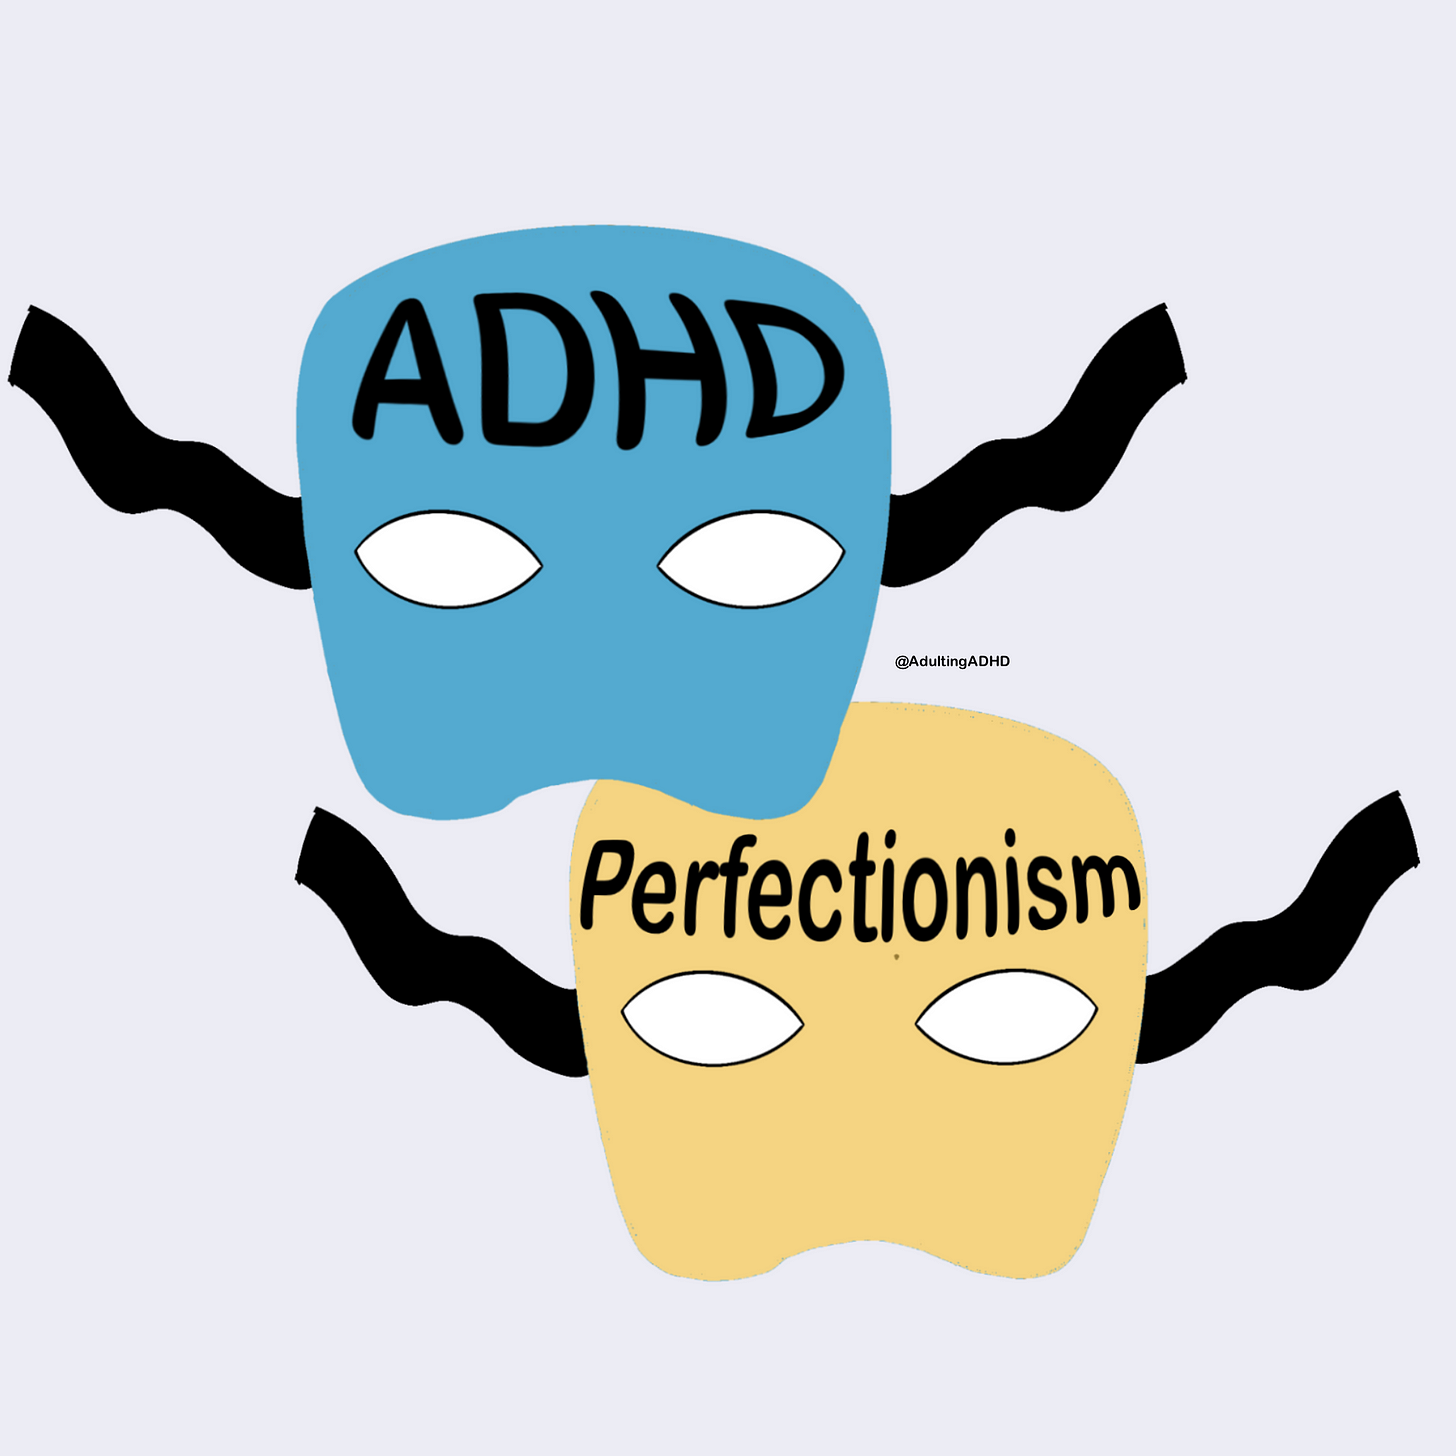 A blue costume mask with the word 'ADHD' written on it and a yellow costume mask with 'perfectionism' written on it.